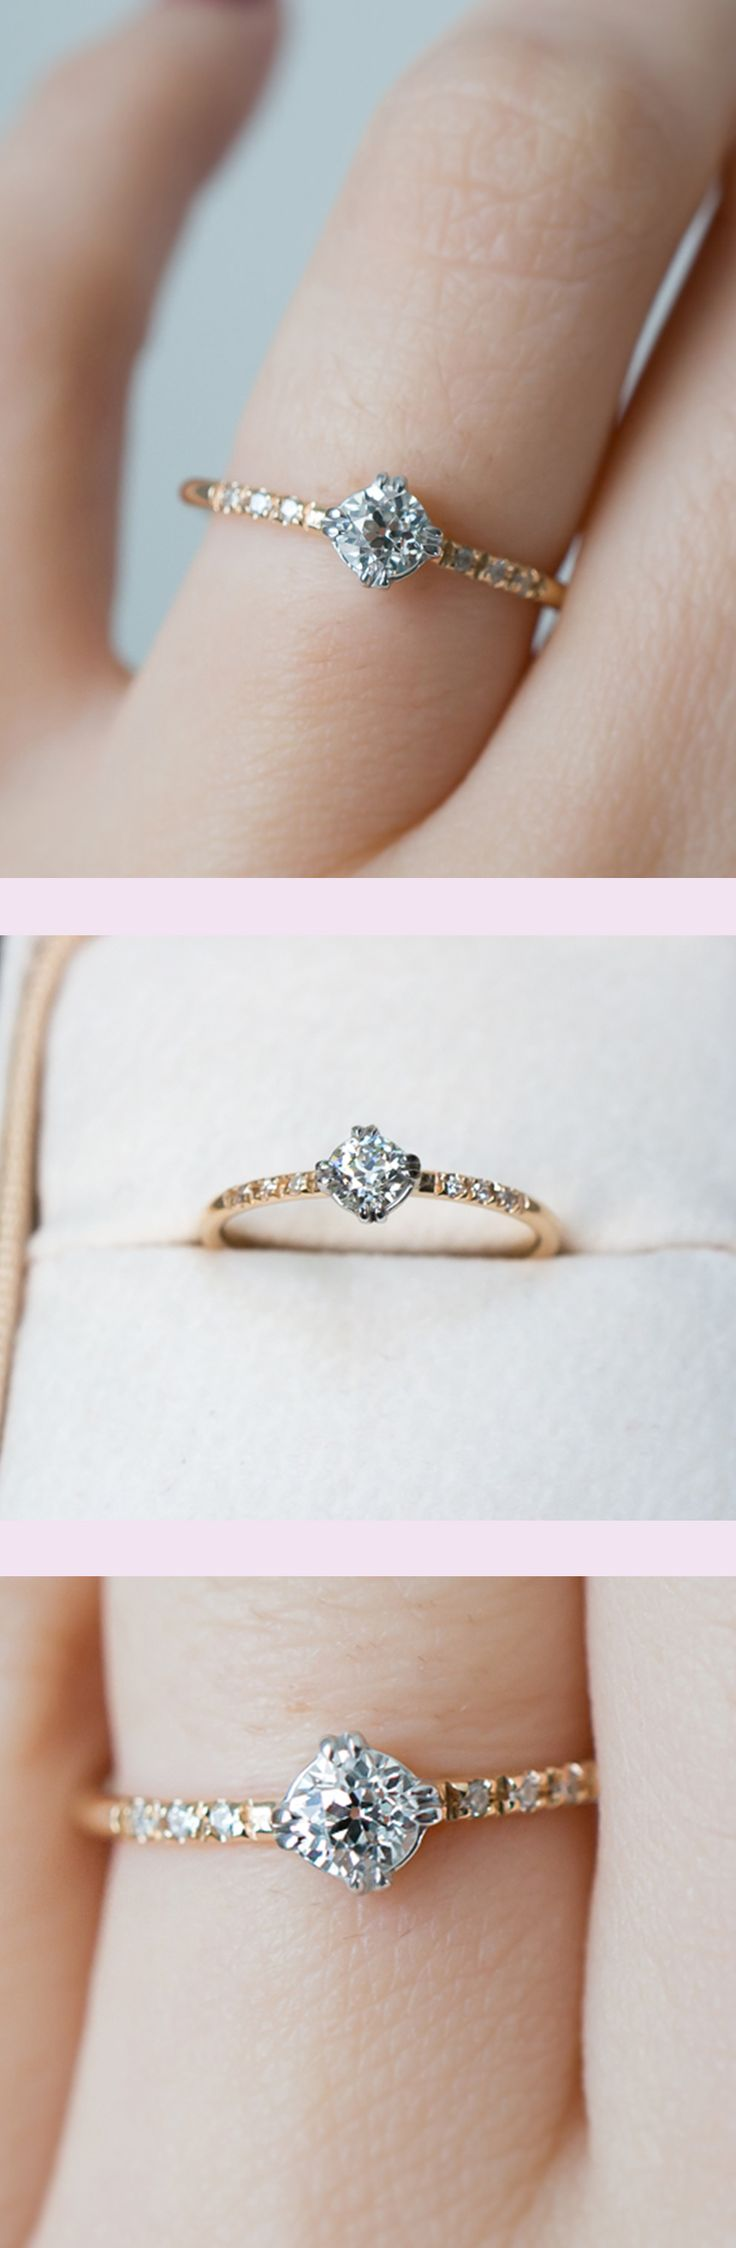 The sweetest vintage diamond engagement ring by S. Kind & Co.